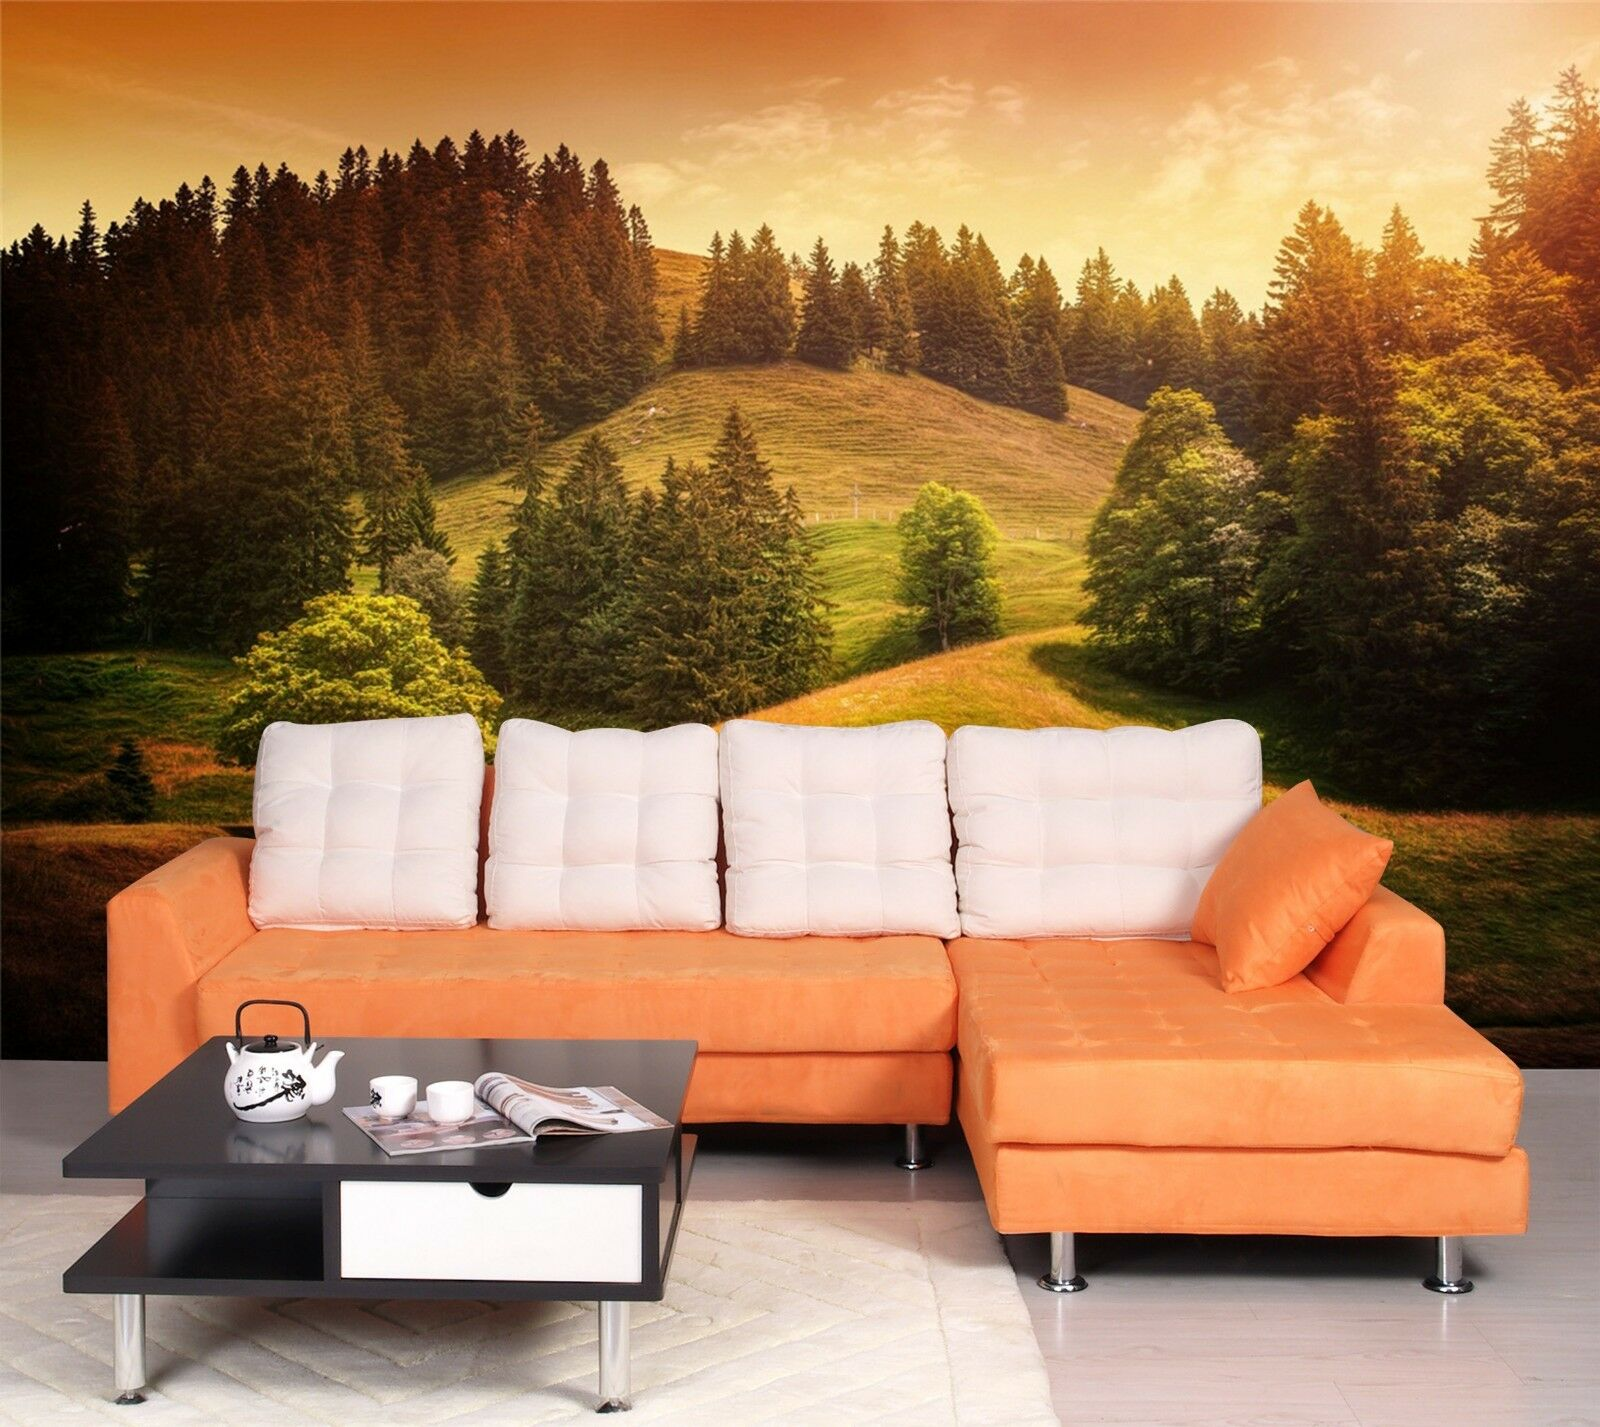 3D Sunset Grassland forest 71 Wall Paper Print Decal Wall Deco Indoor wall Mural